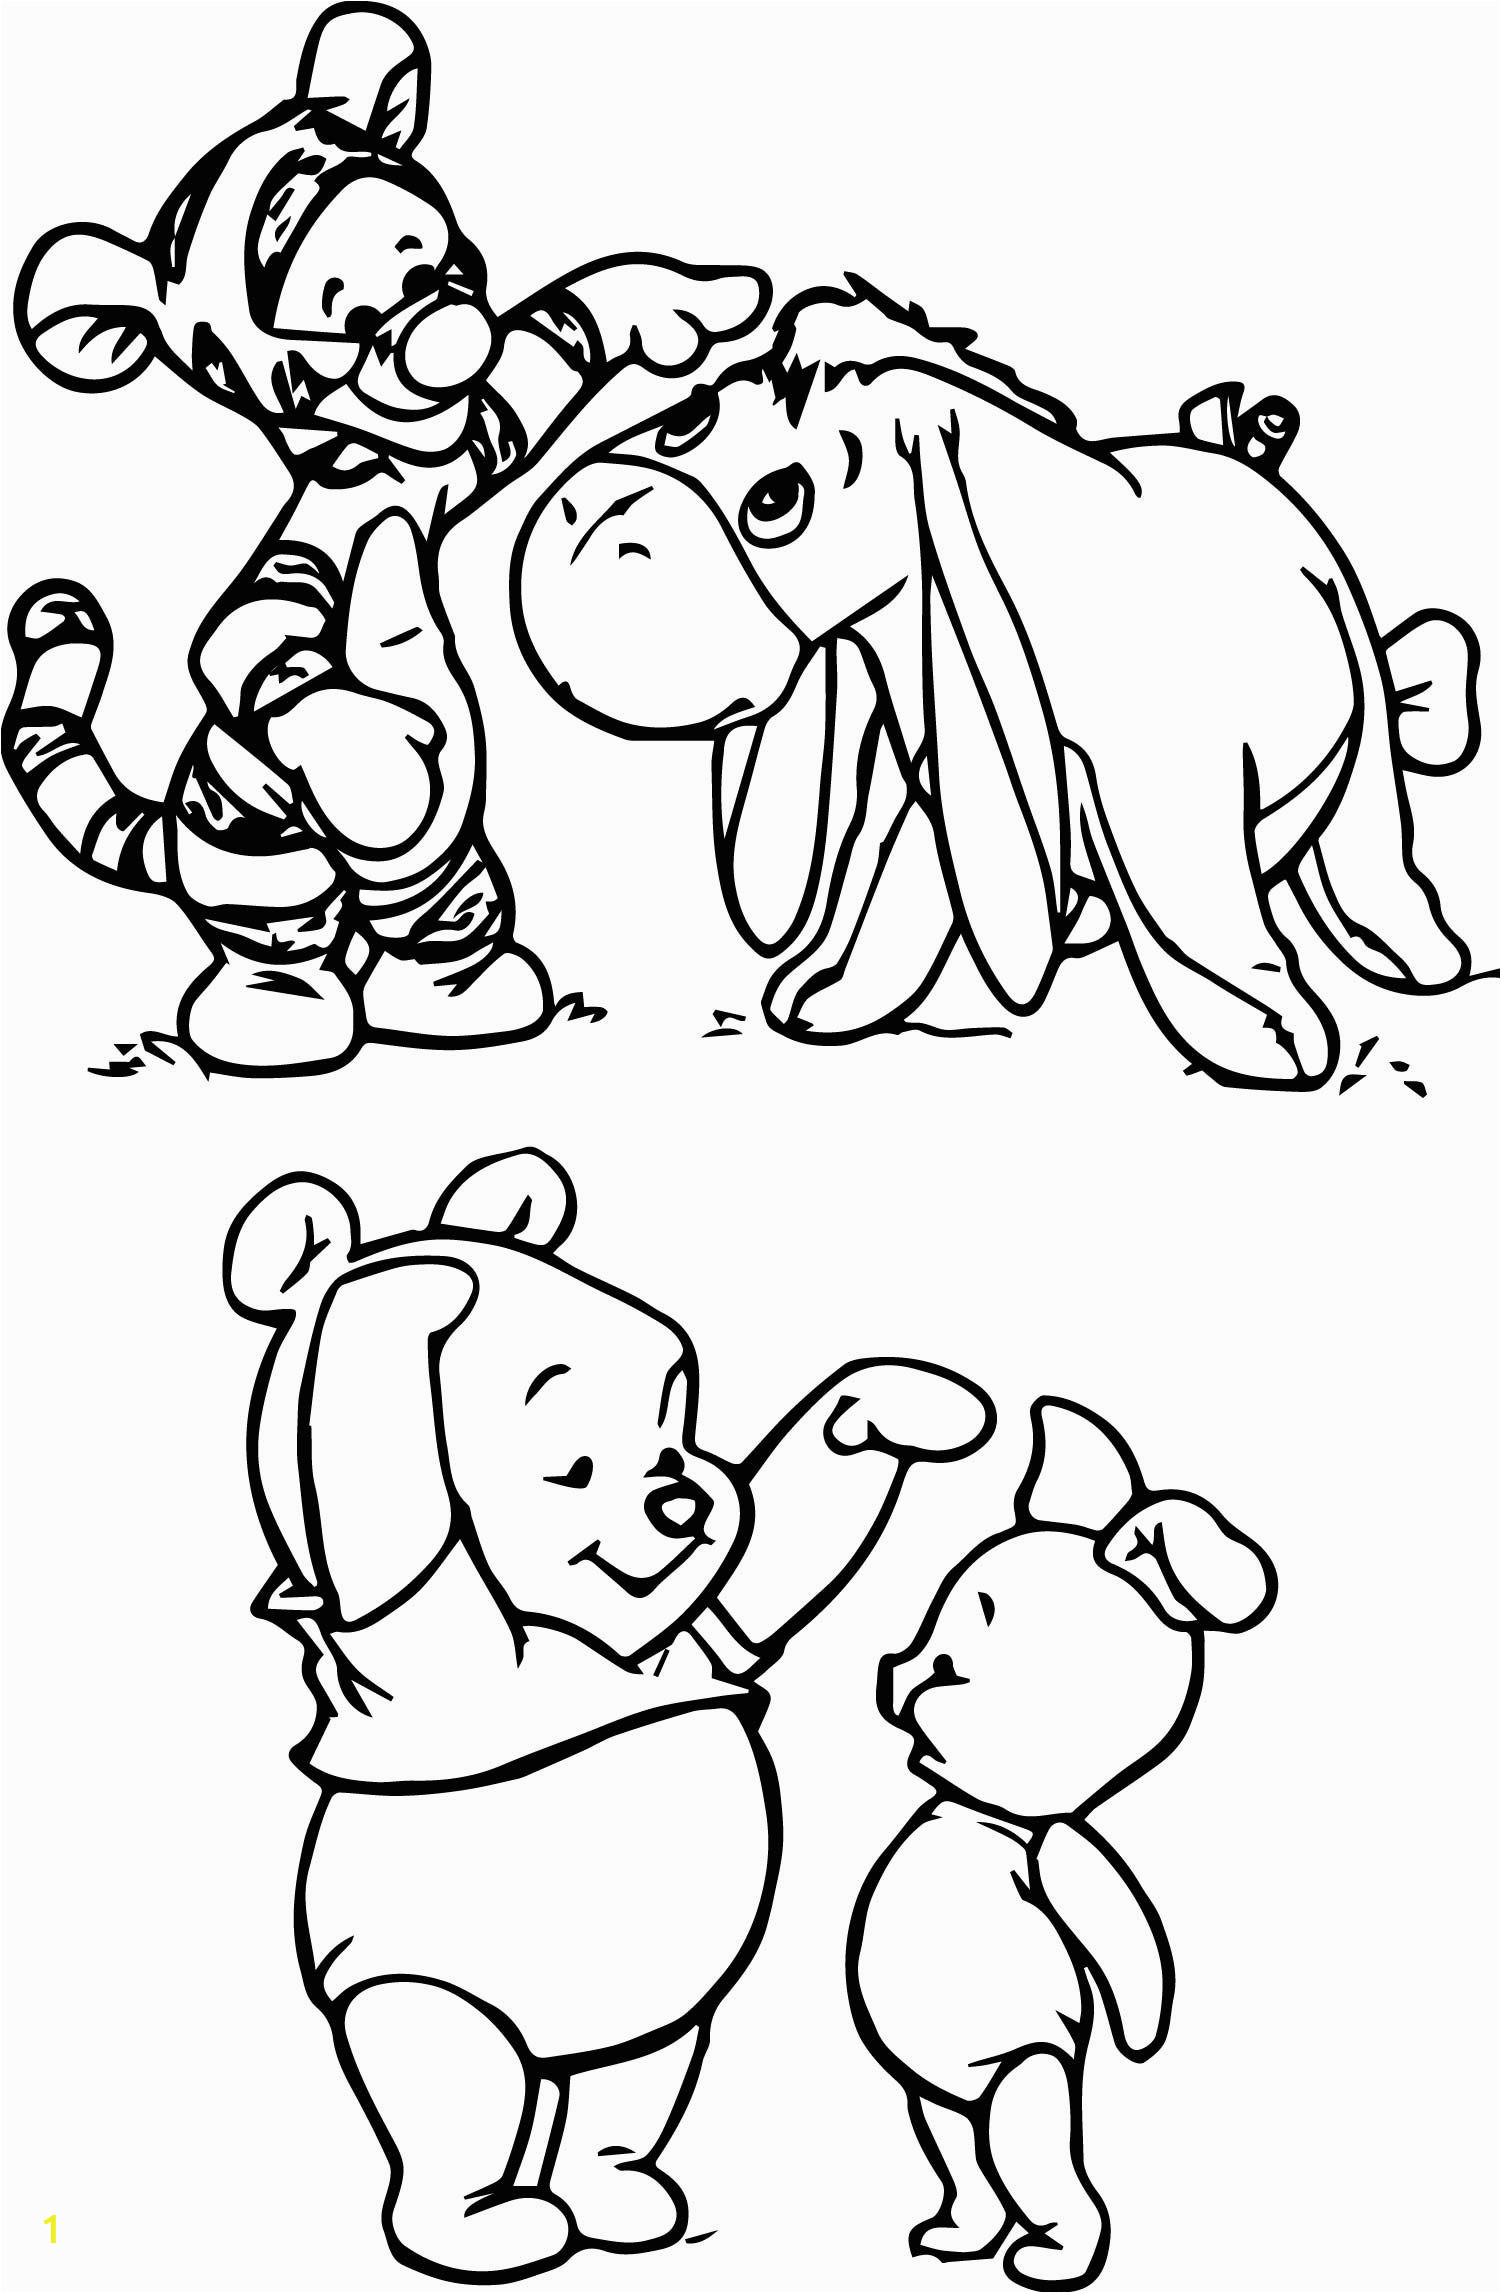 christopher robin coloring pages christopher robin coloring pages pictures imagixs 463372 robin coloring christopher pages